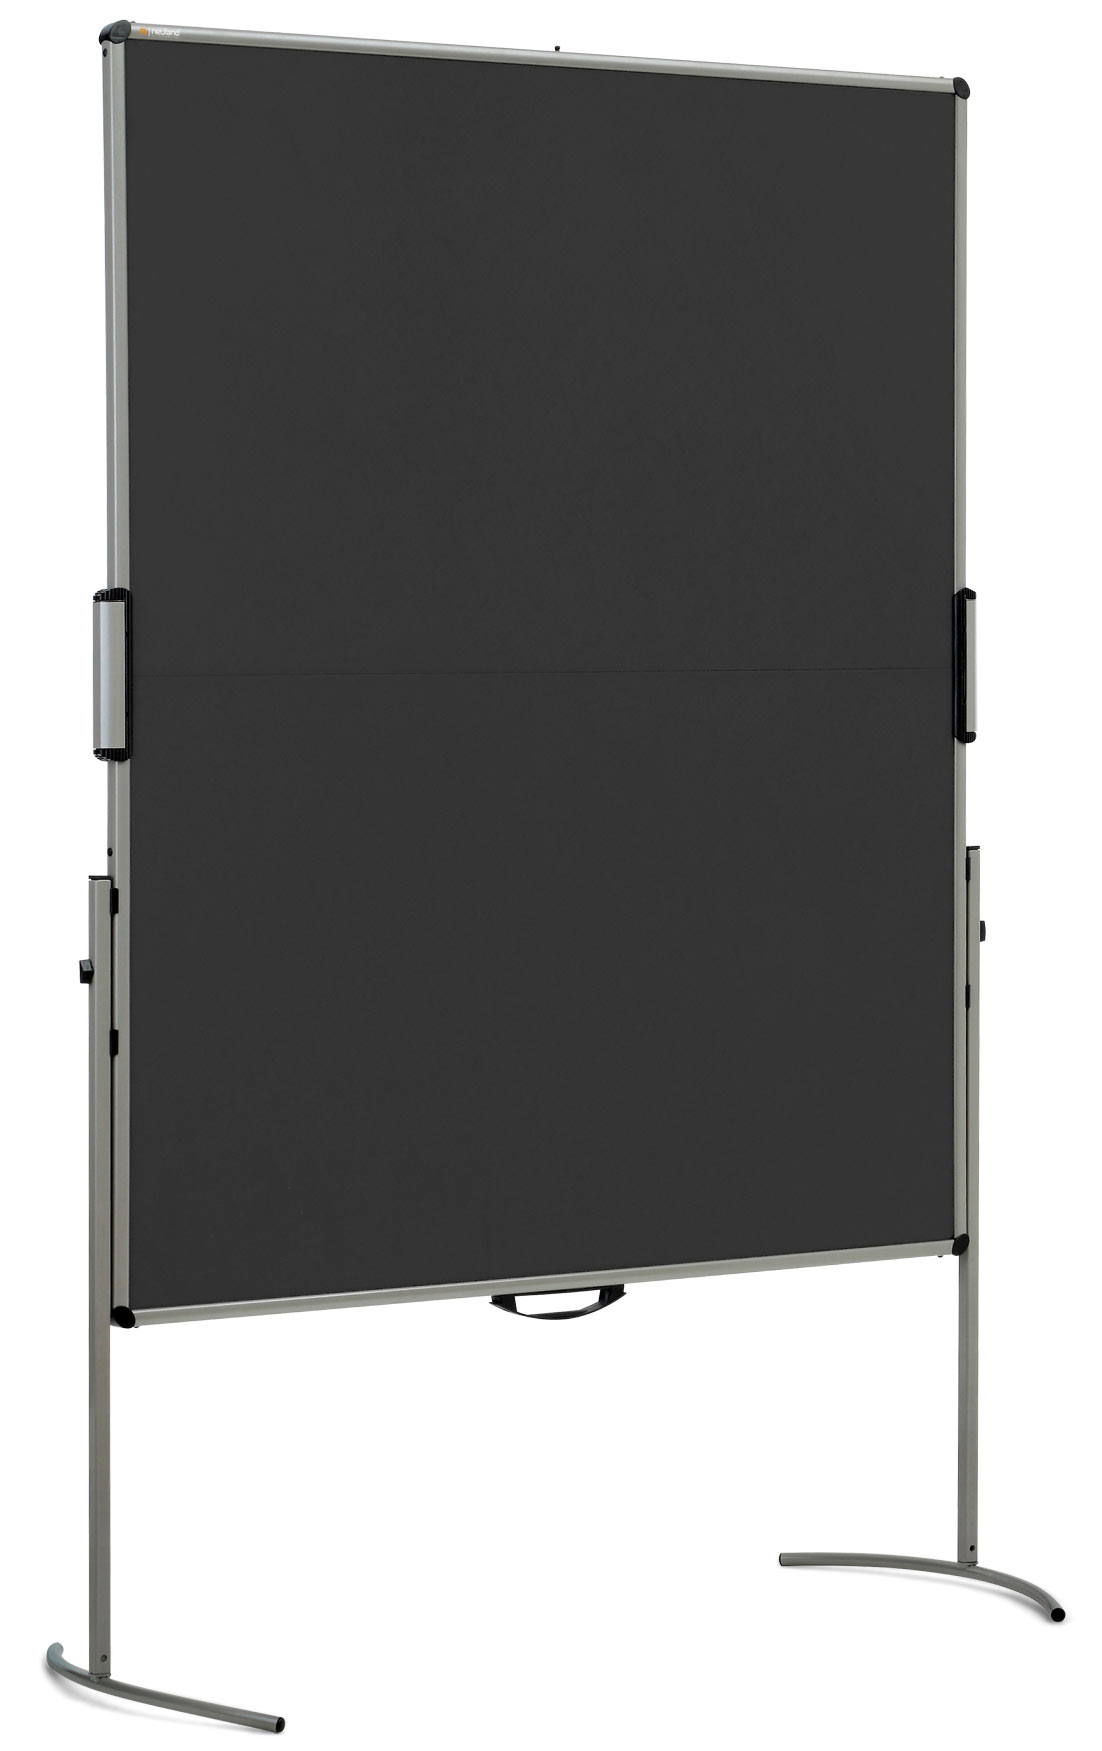 UniPin® 2 MC-B Pinboard: grey alu/black foam board